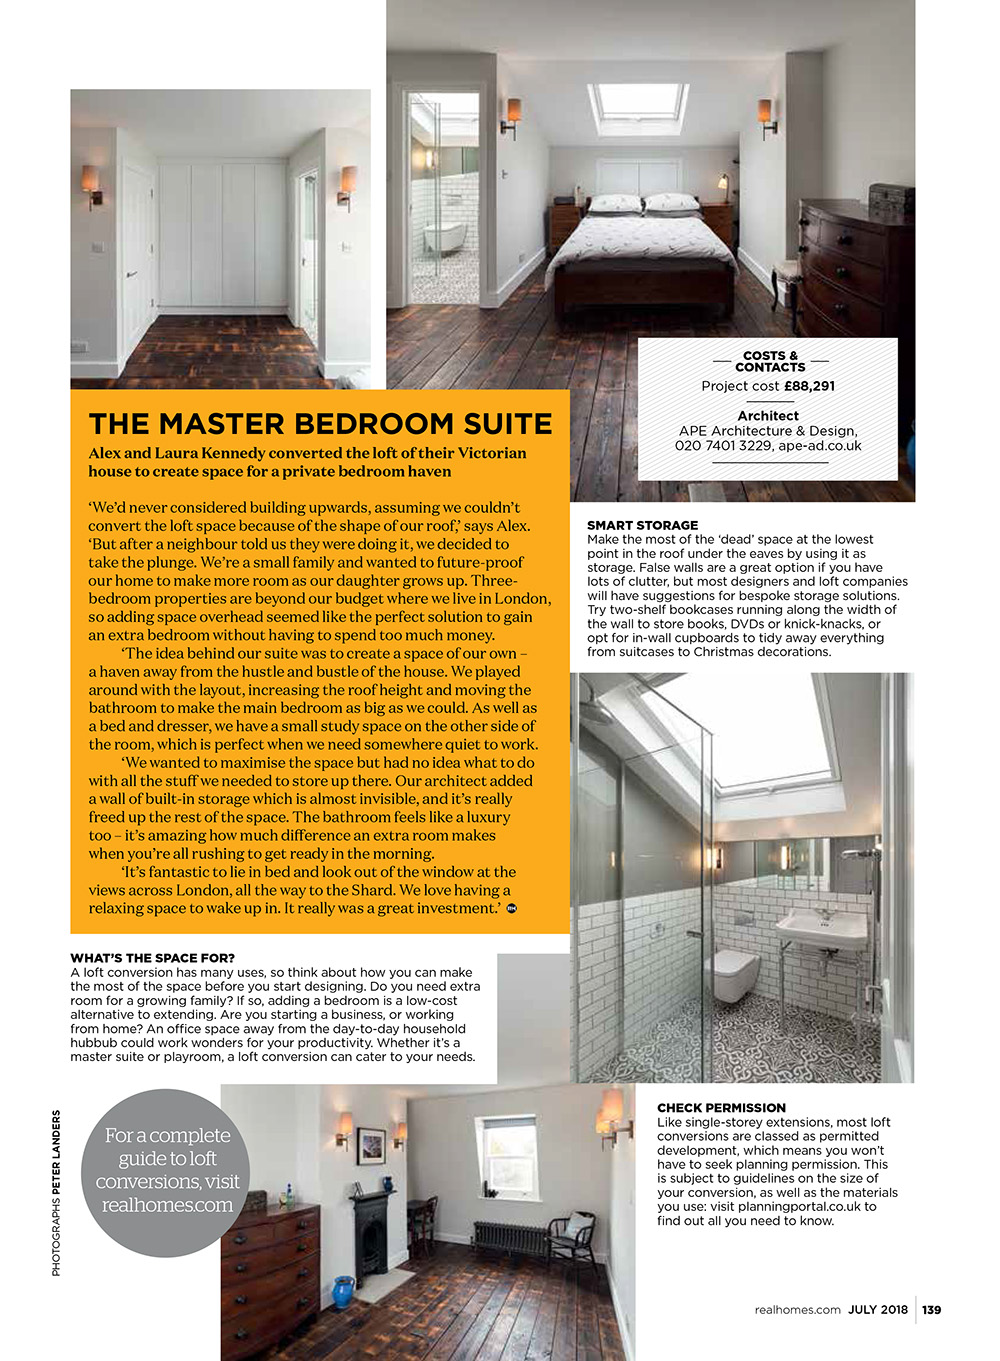 Hackney House featured in Real Homes Magazine